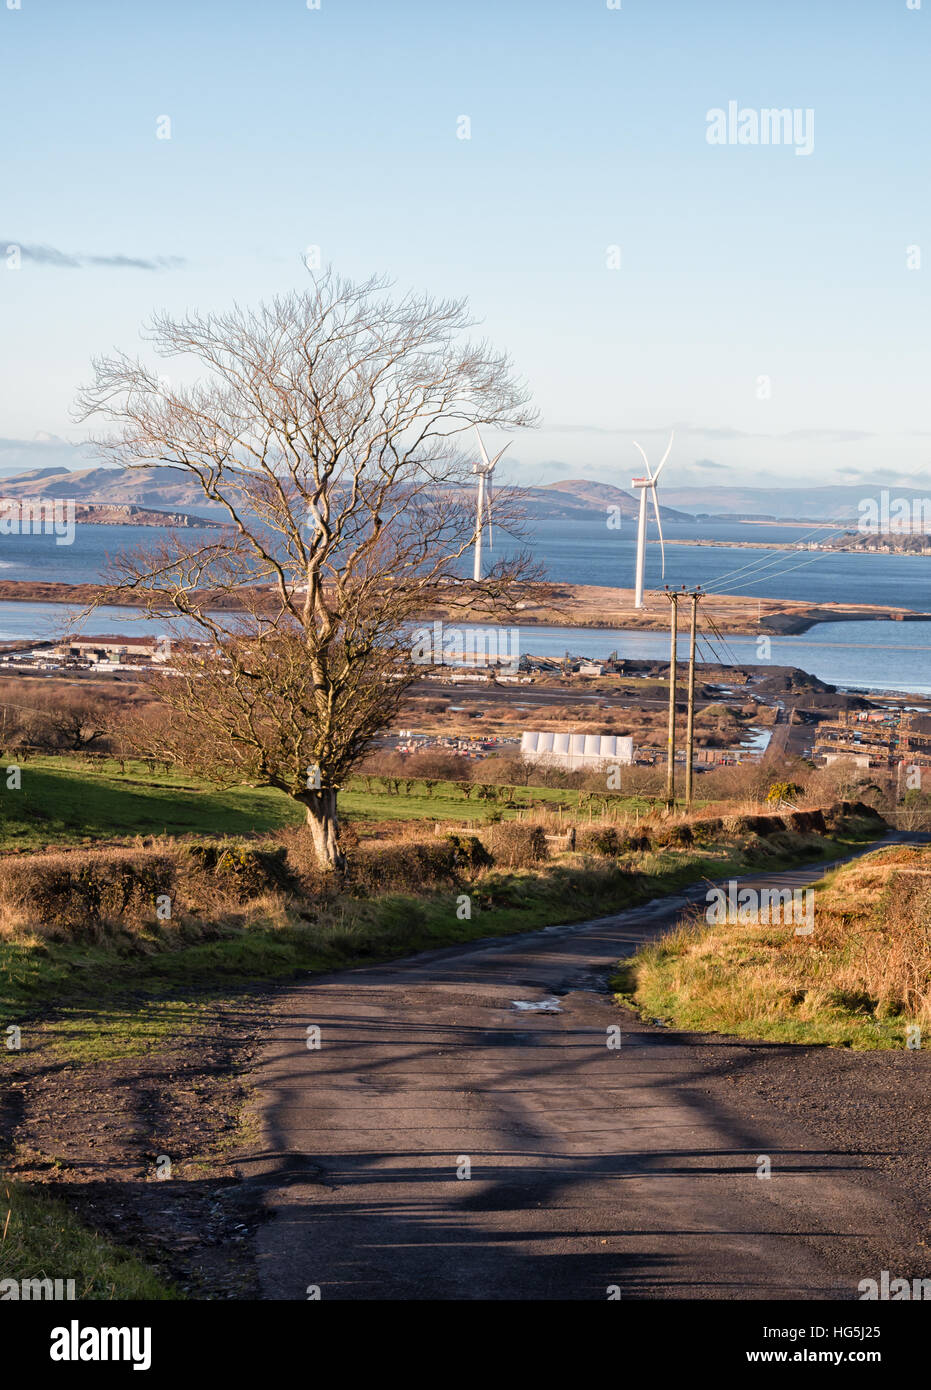 Fairlie Moor Looking onto Wind Turbines and Arran in distance. Arran,Majestic,Cumbrae's,Clyde,Roadway,Leading - Stock Image